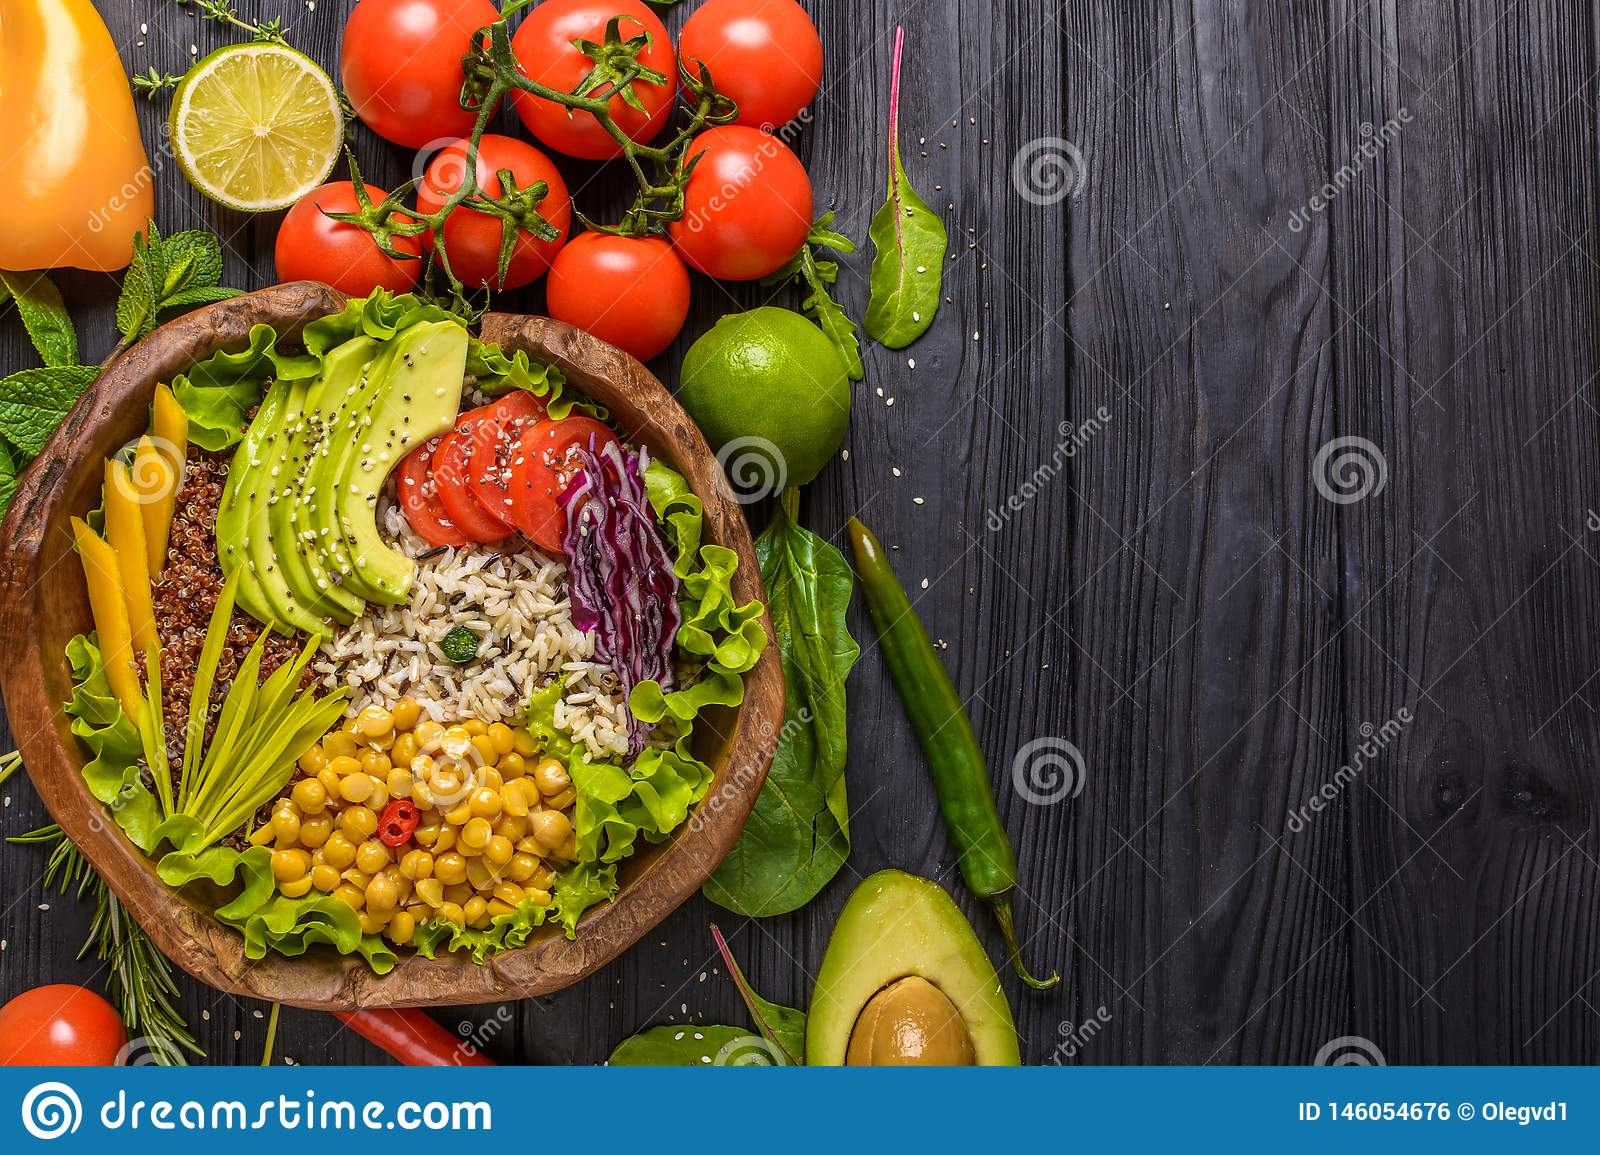 Buddha bowl with chickpea, avocado, wild rice, quinoa seeds, bell pepper, tomatoes, greens, cabbage, lettuce on old black wooden